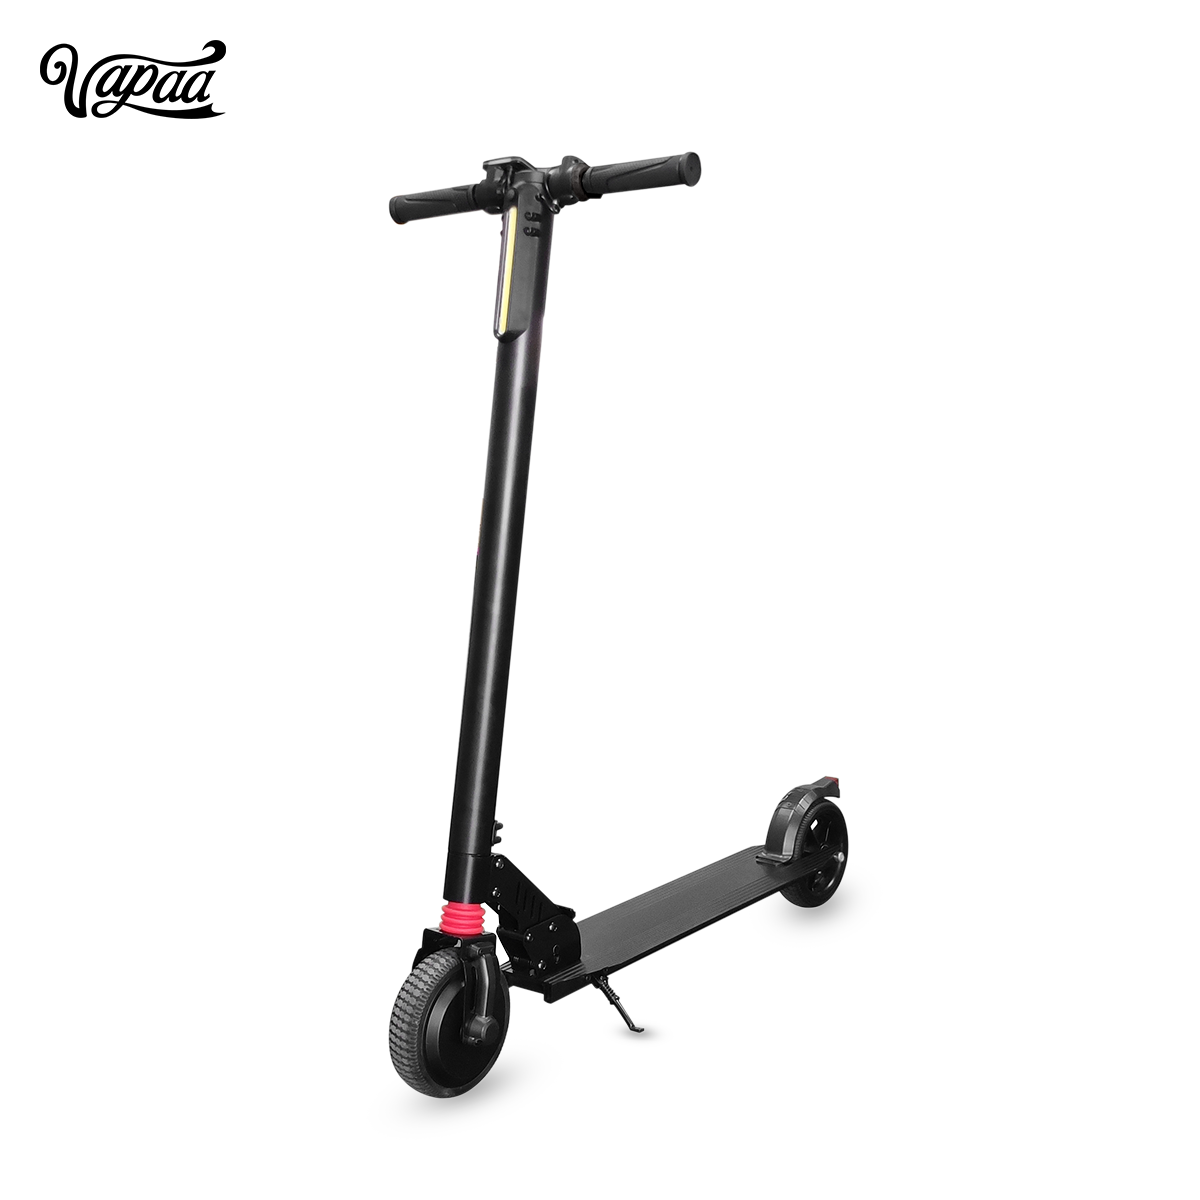 What should I do if the electric scooter cannot be turned on?